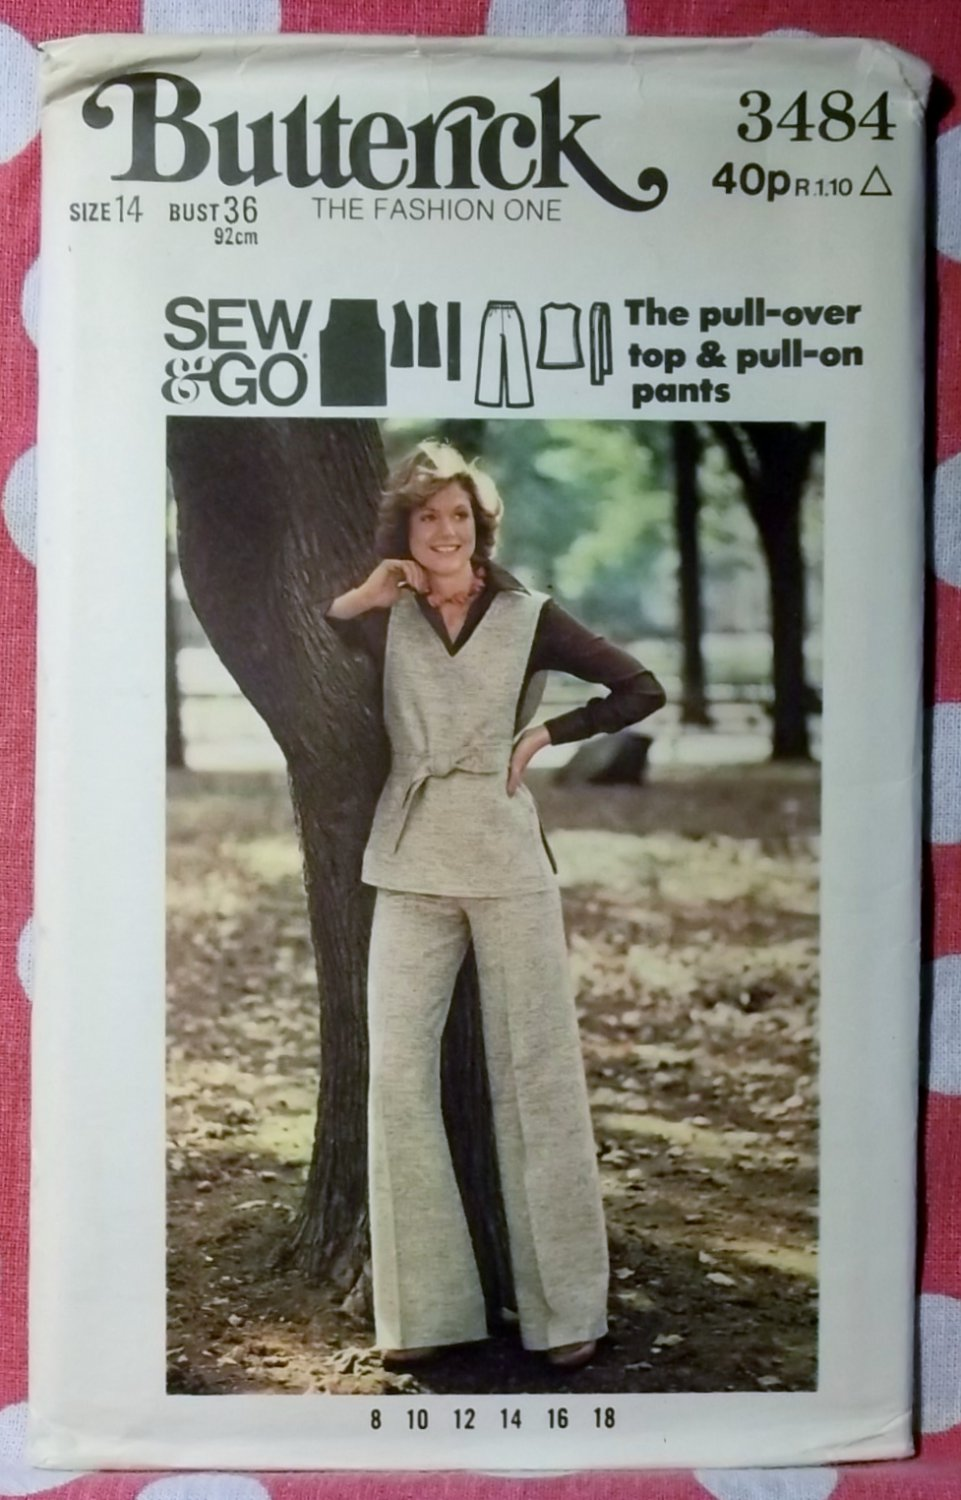 Vintage 1970s Sew & Go Butterick 3484 Pattern, Pull-over Top & Pants - Sz 14, Bust 36, Uncut